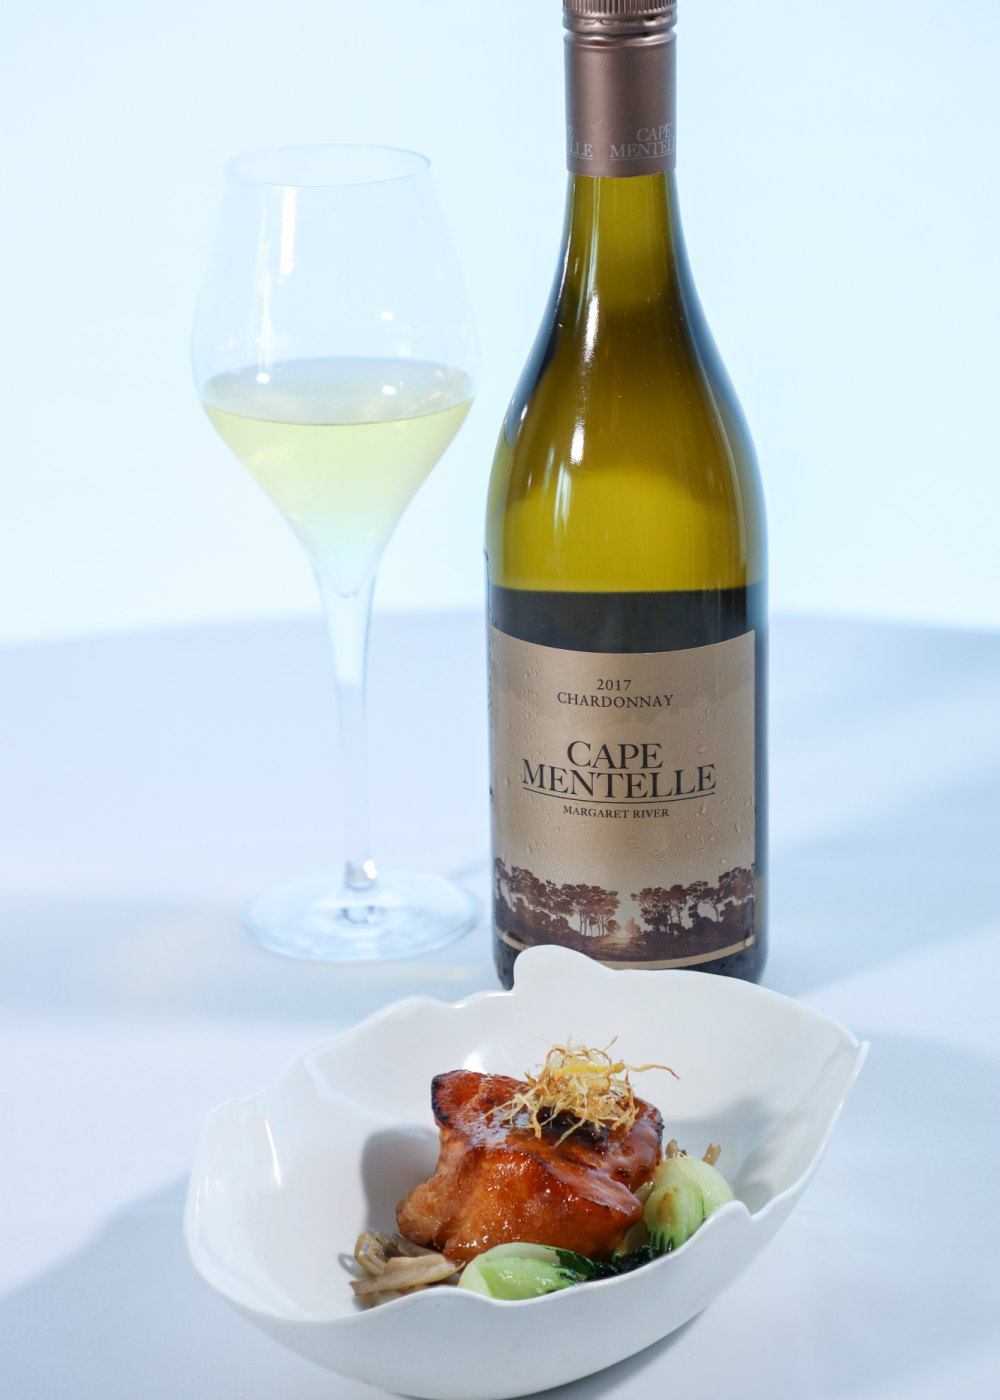 Cape Mentelle Exclusive Luncheon with Cameron Murphy Food Pairing 3 - 与 Cameron Murphy 共赴 Cape Mentelle 独家美酒午宴